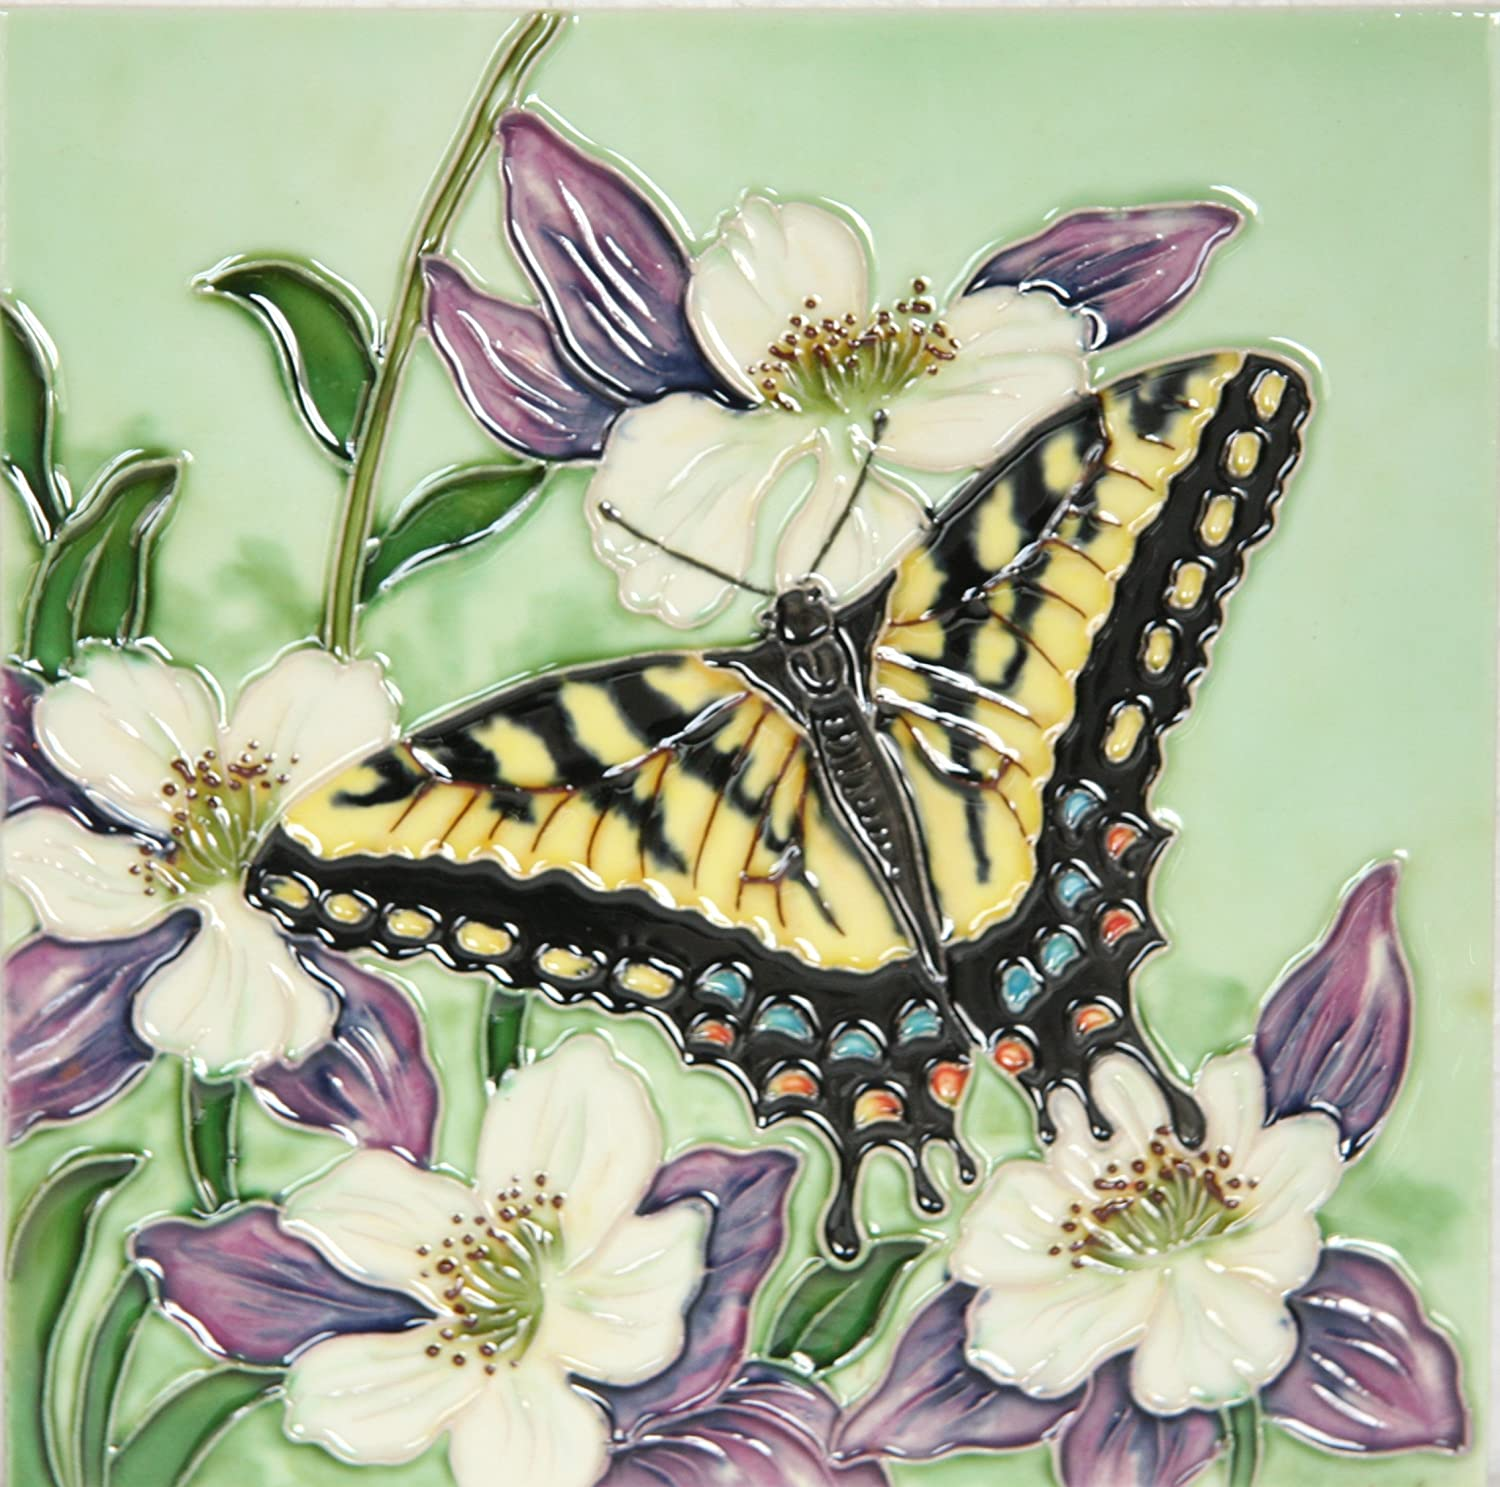 YH-Arts 'Butterfly Two Ceramic Tiles, Multi-Colour, 8 X 8-Inch 8x8-420